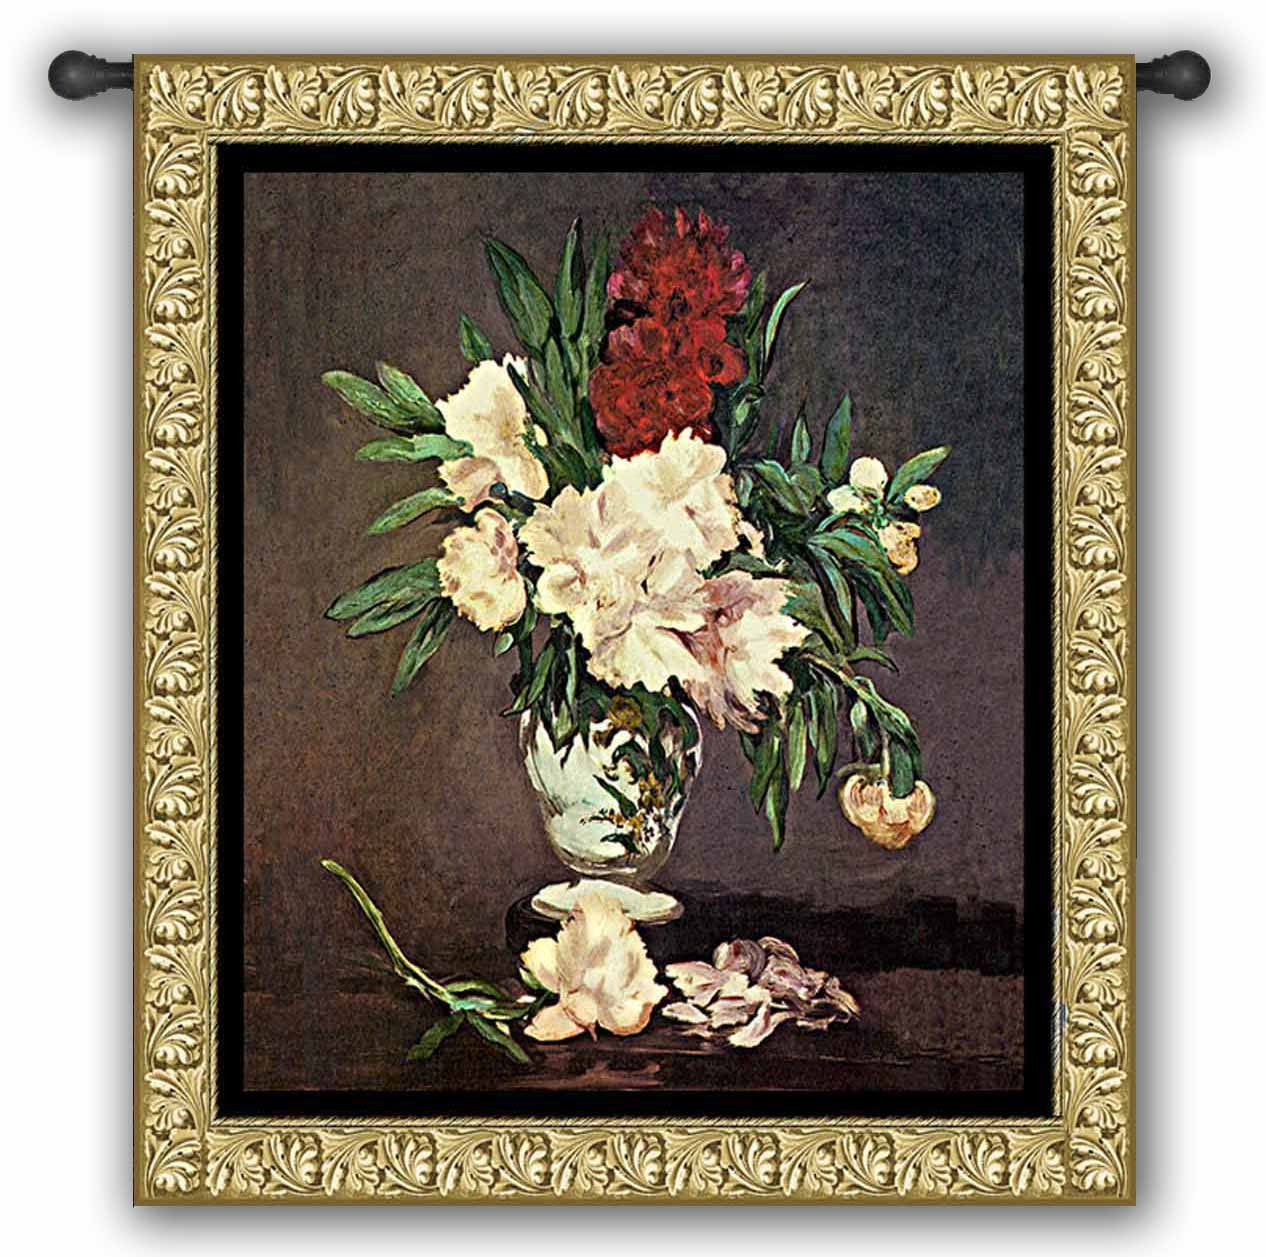 "Your Favorite Art Tapestry Wall Hanging - Studio (26"" x 34"")"